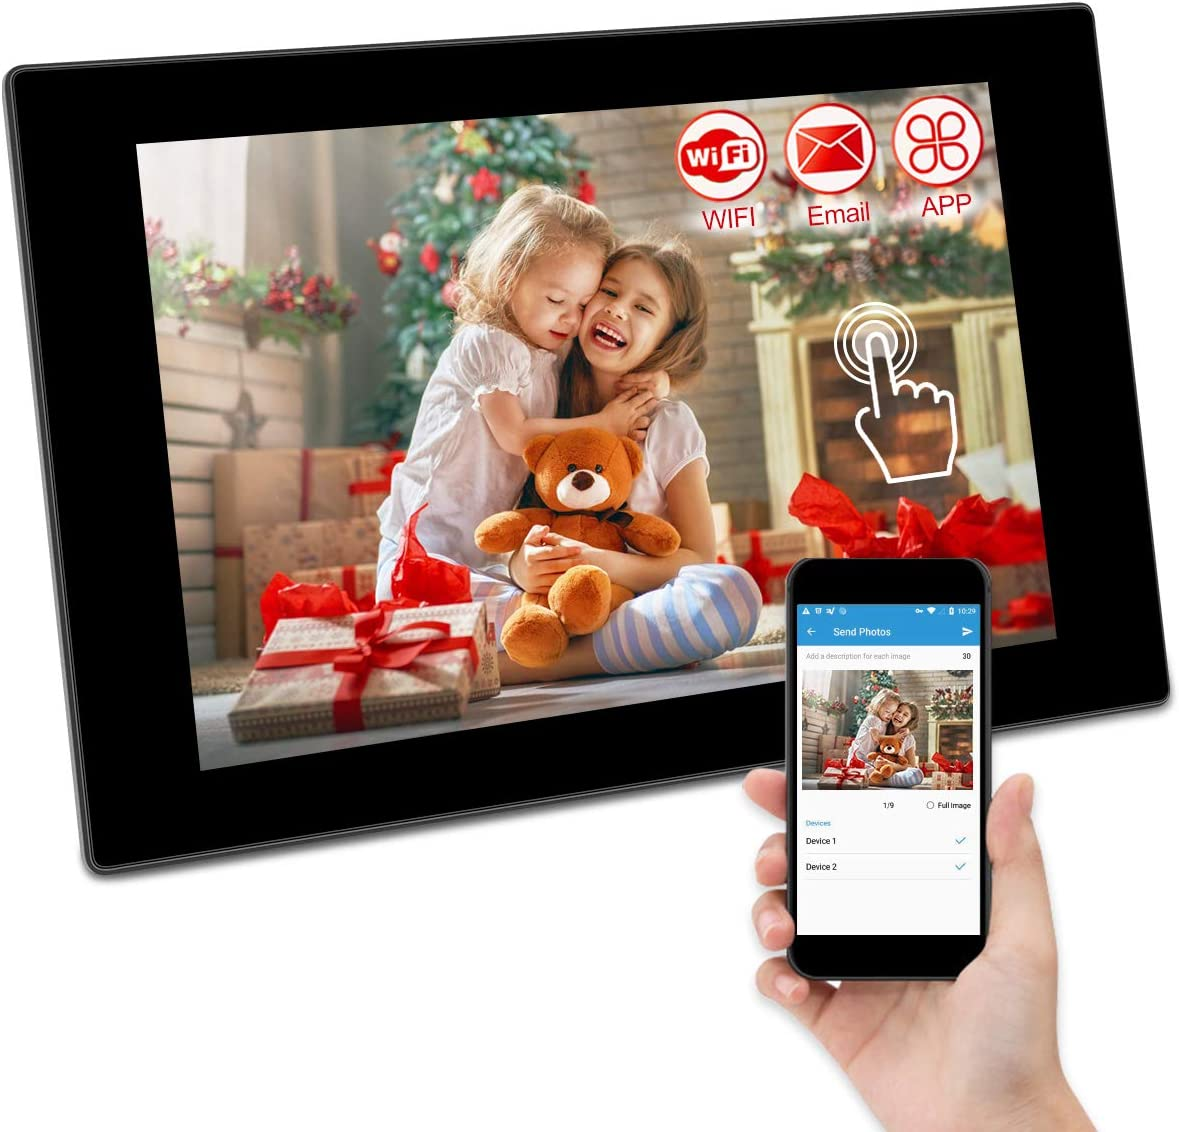 GRC 10.1 Inch WiFi Digital Photo Frame with IPS Full HD Touch Screen, Add Photos and Videos from Email App iOS Android Facebook Twitter, 16GB Internal Storage, Support SD Card and USB Flash Drive